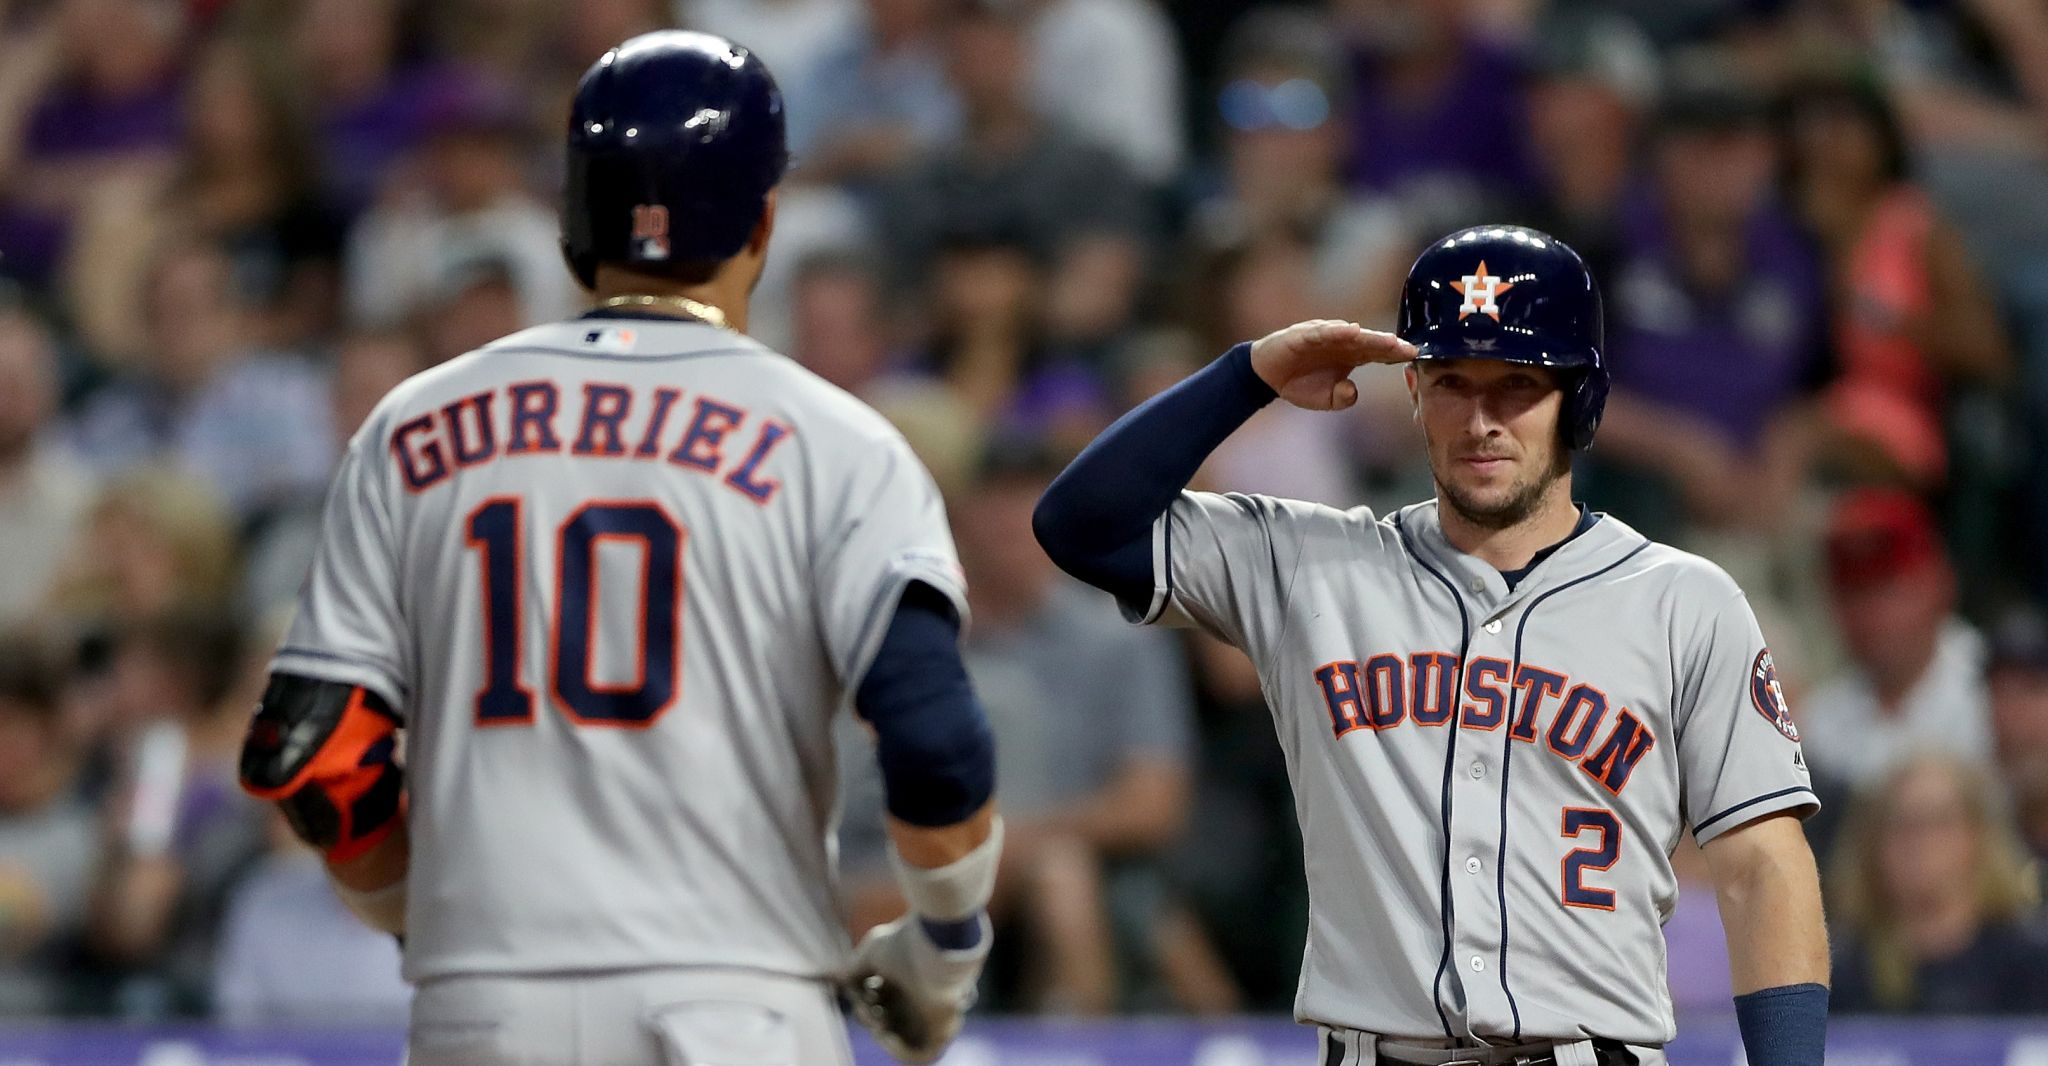 Rumors of Astros' demise greatly exaggerated